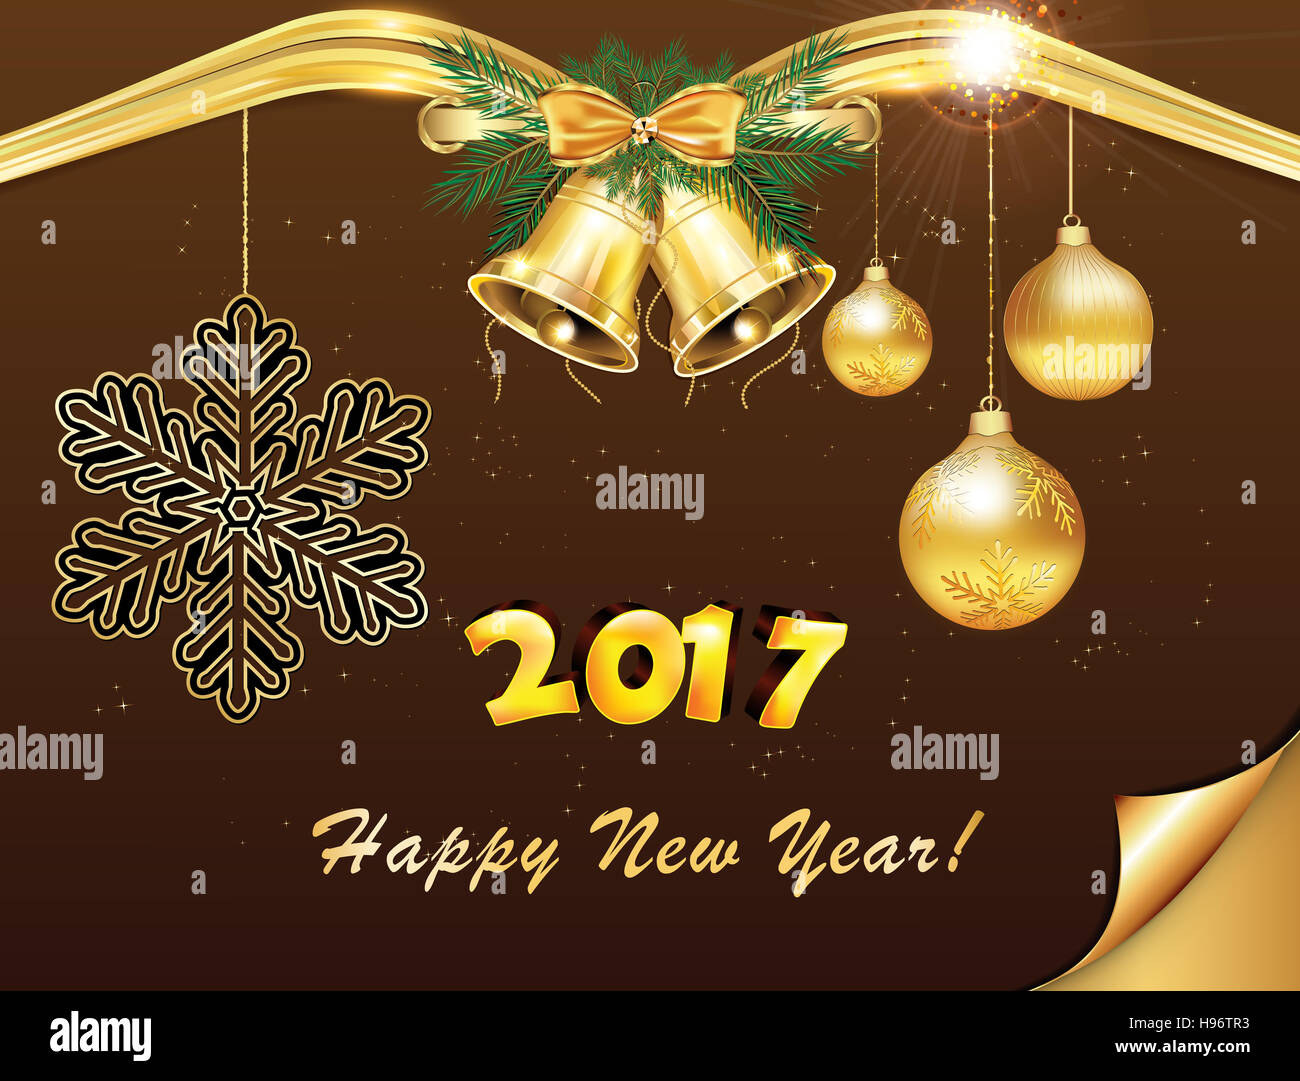 Elegant christmas and new year 2017 background greeting card elegant christmas and new year 2017 background greeting card print colors used kristyandbryce Choice Image